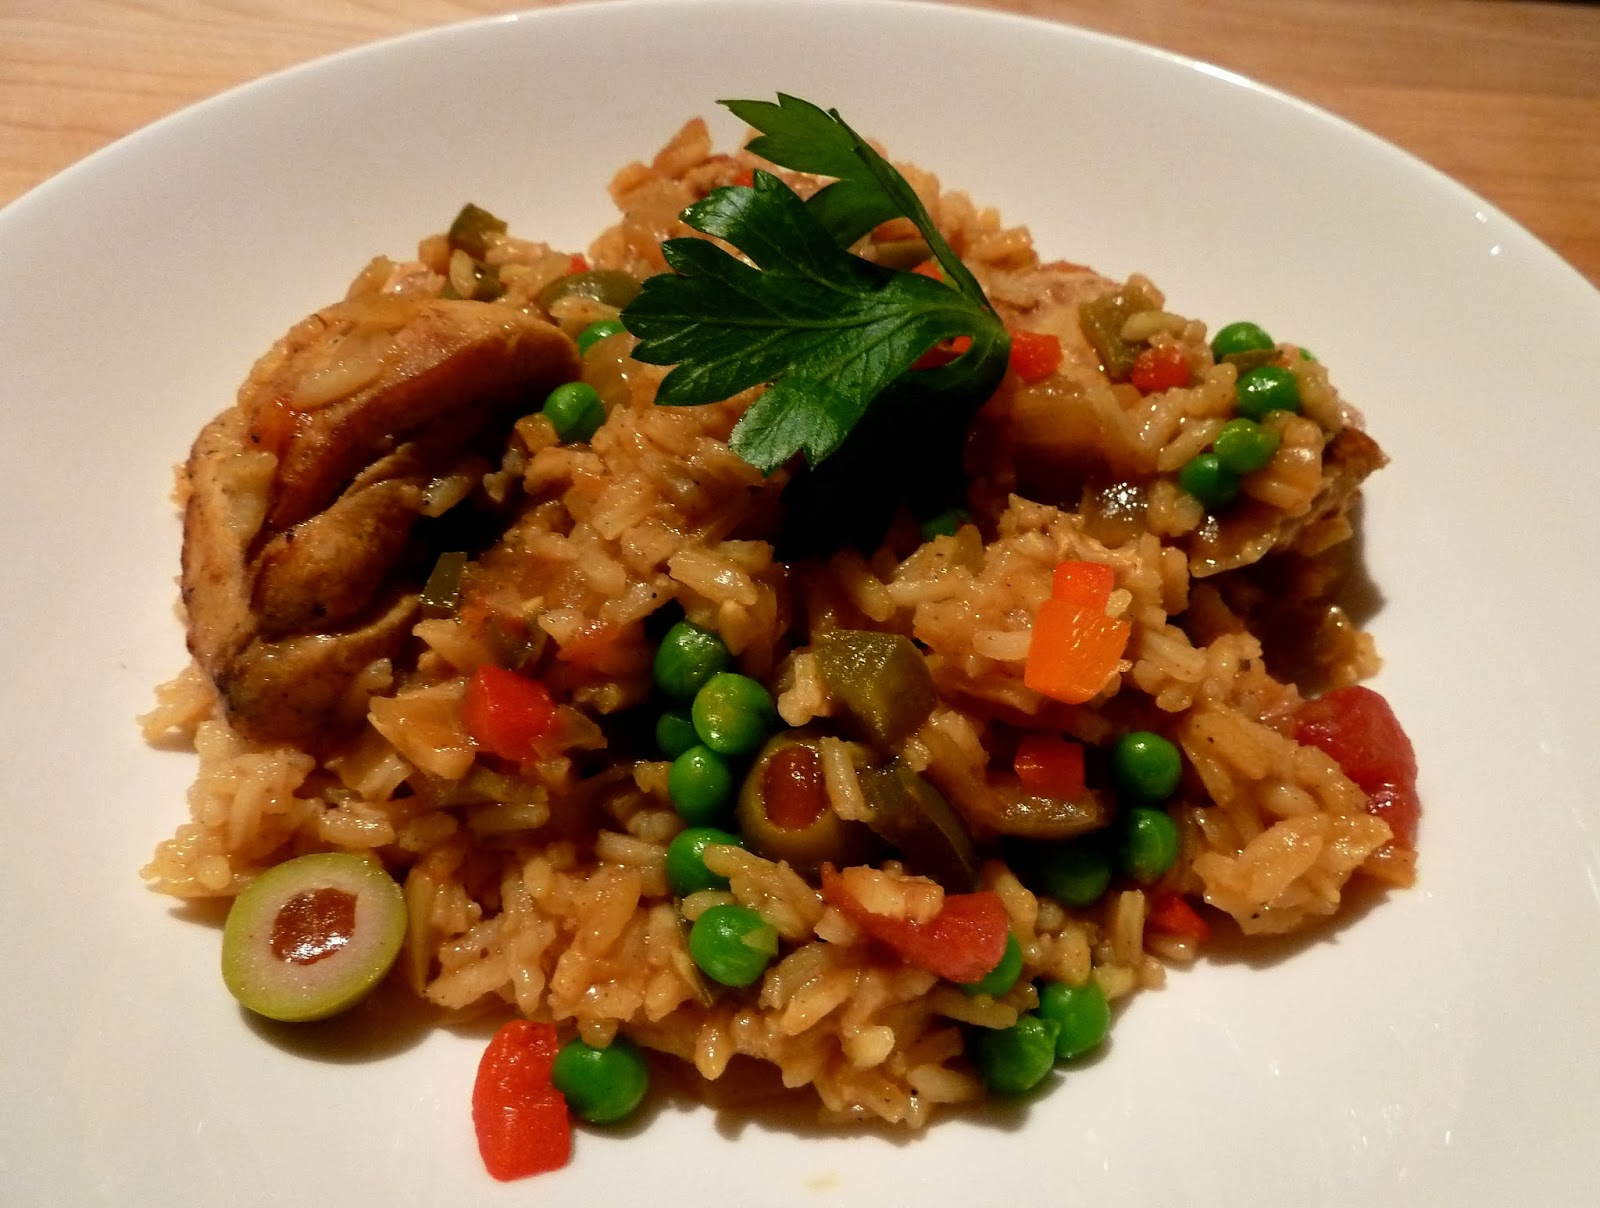 Cracked Pepper: Arroz Con Pollo